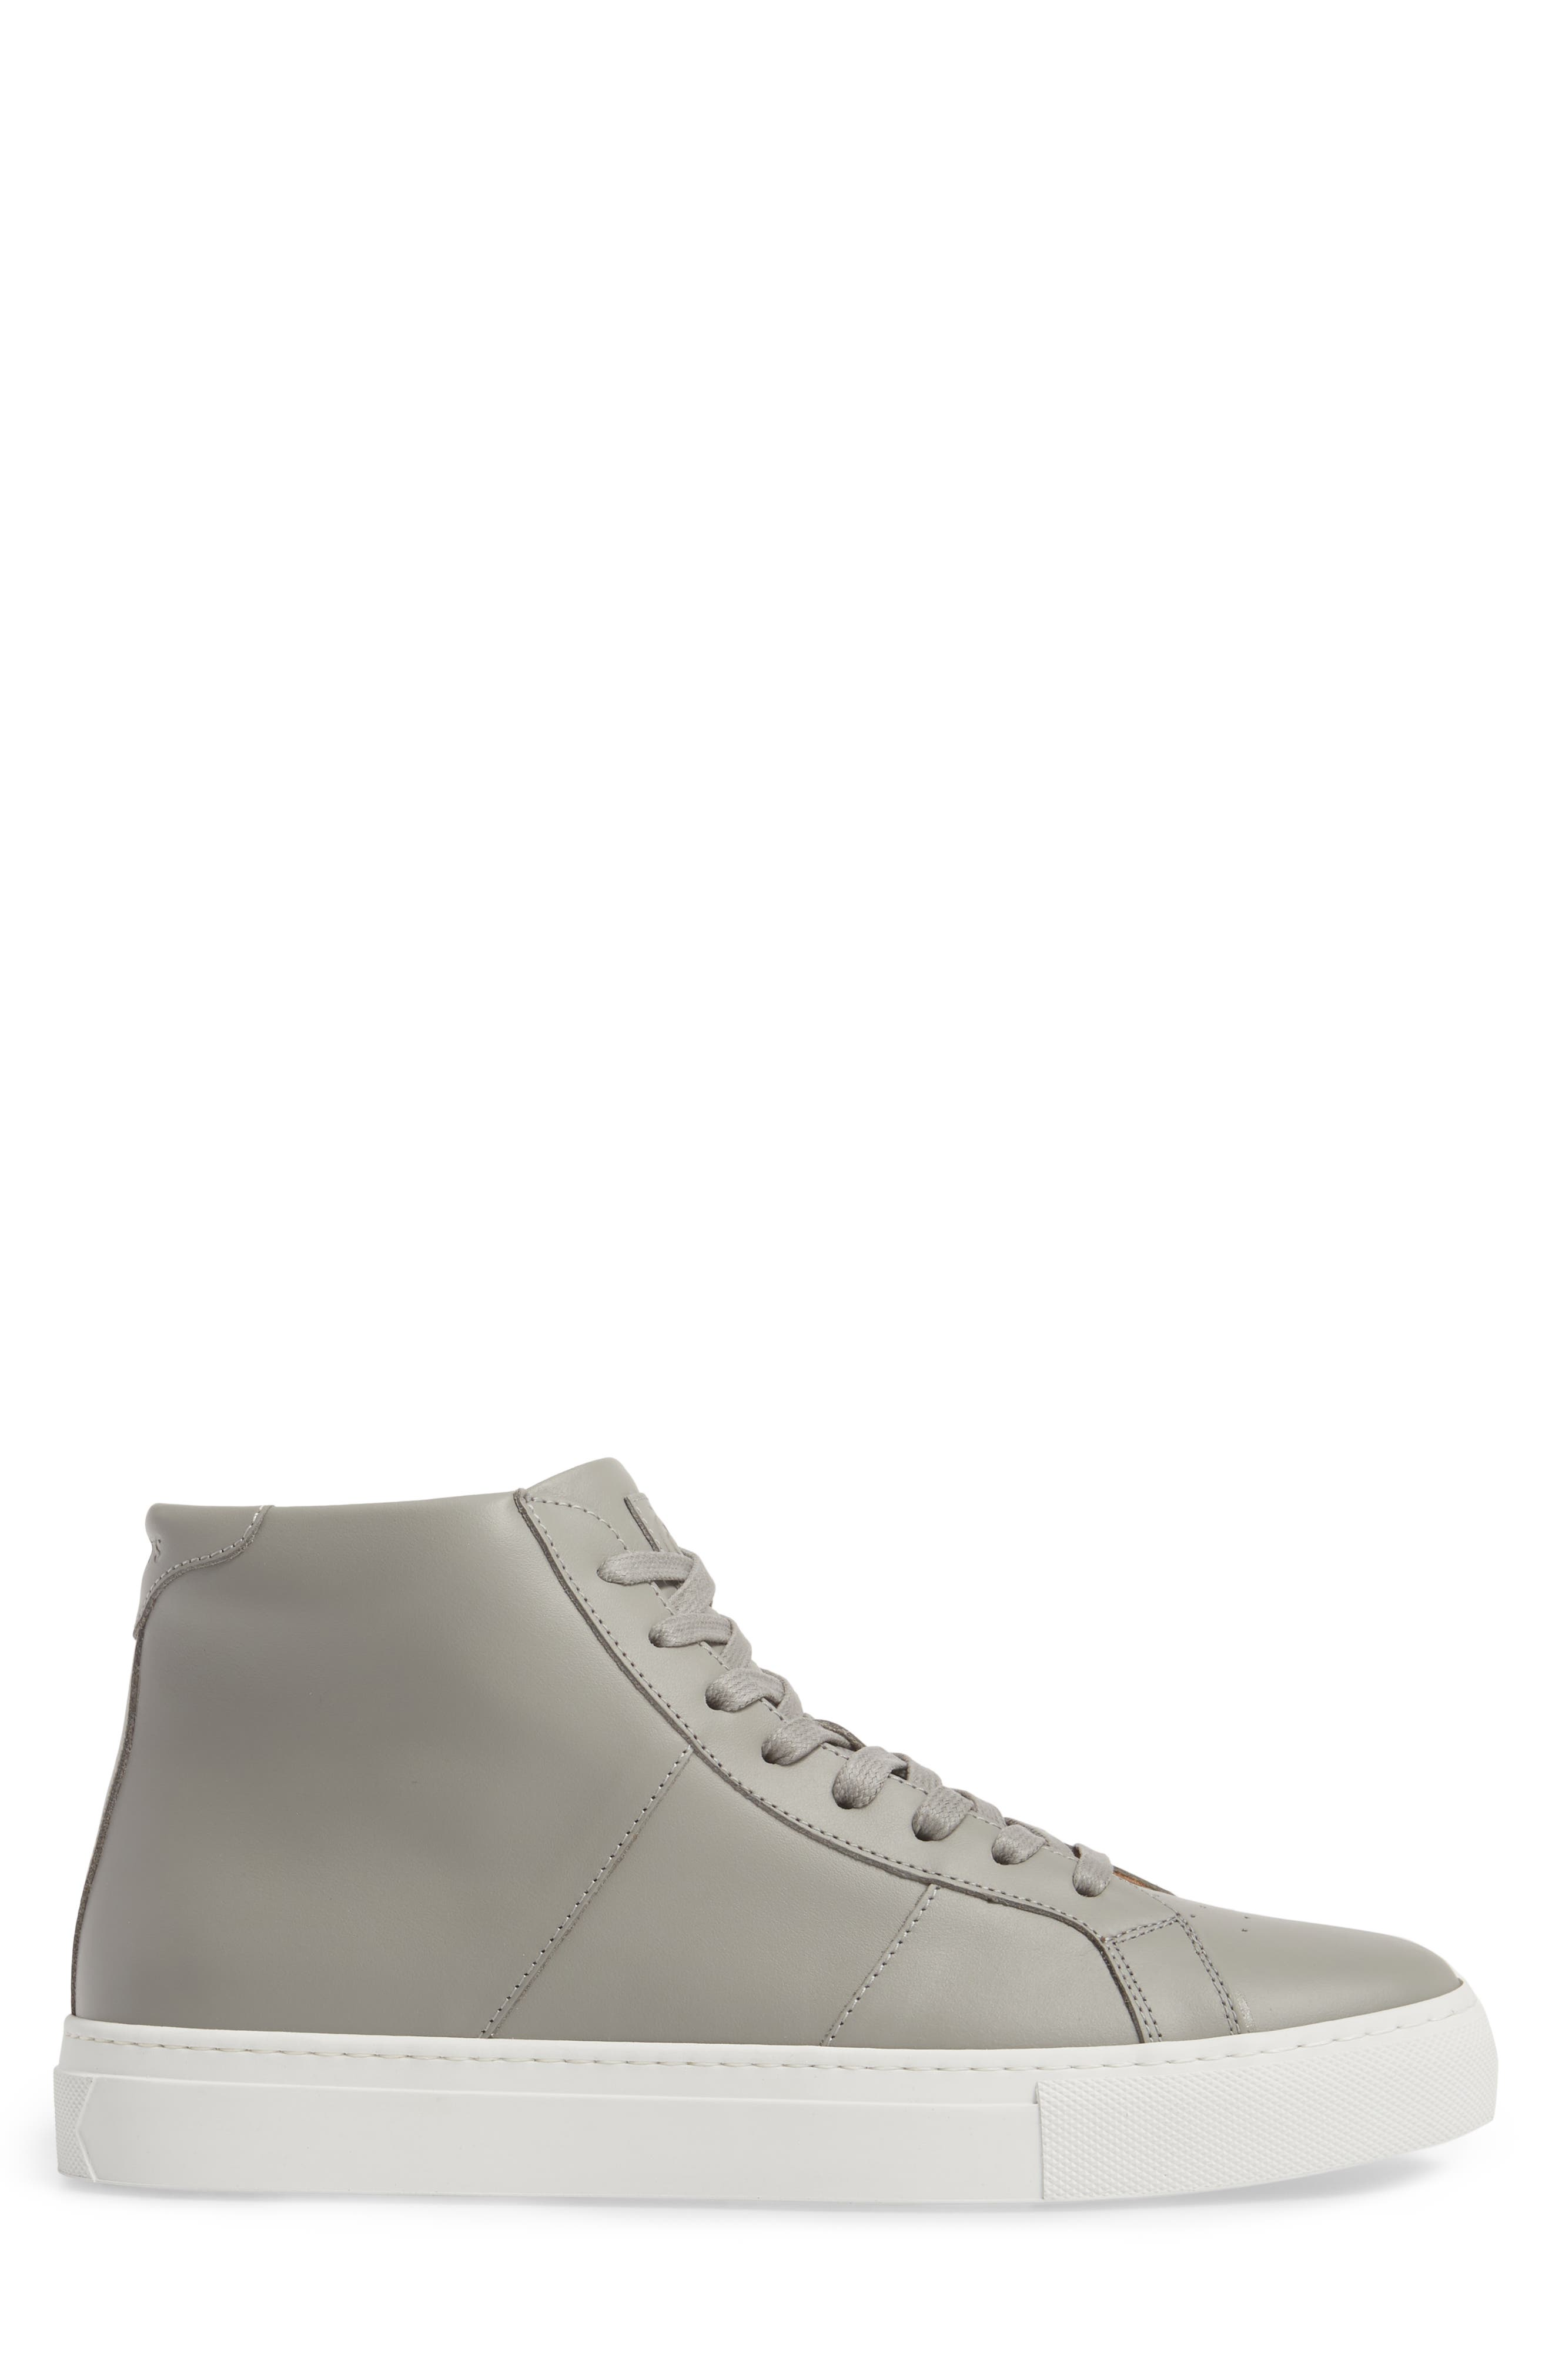 Royale High Top Sneaker,                             Alternate thumbnail 3, color,                             GREY LEATHER